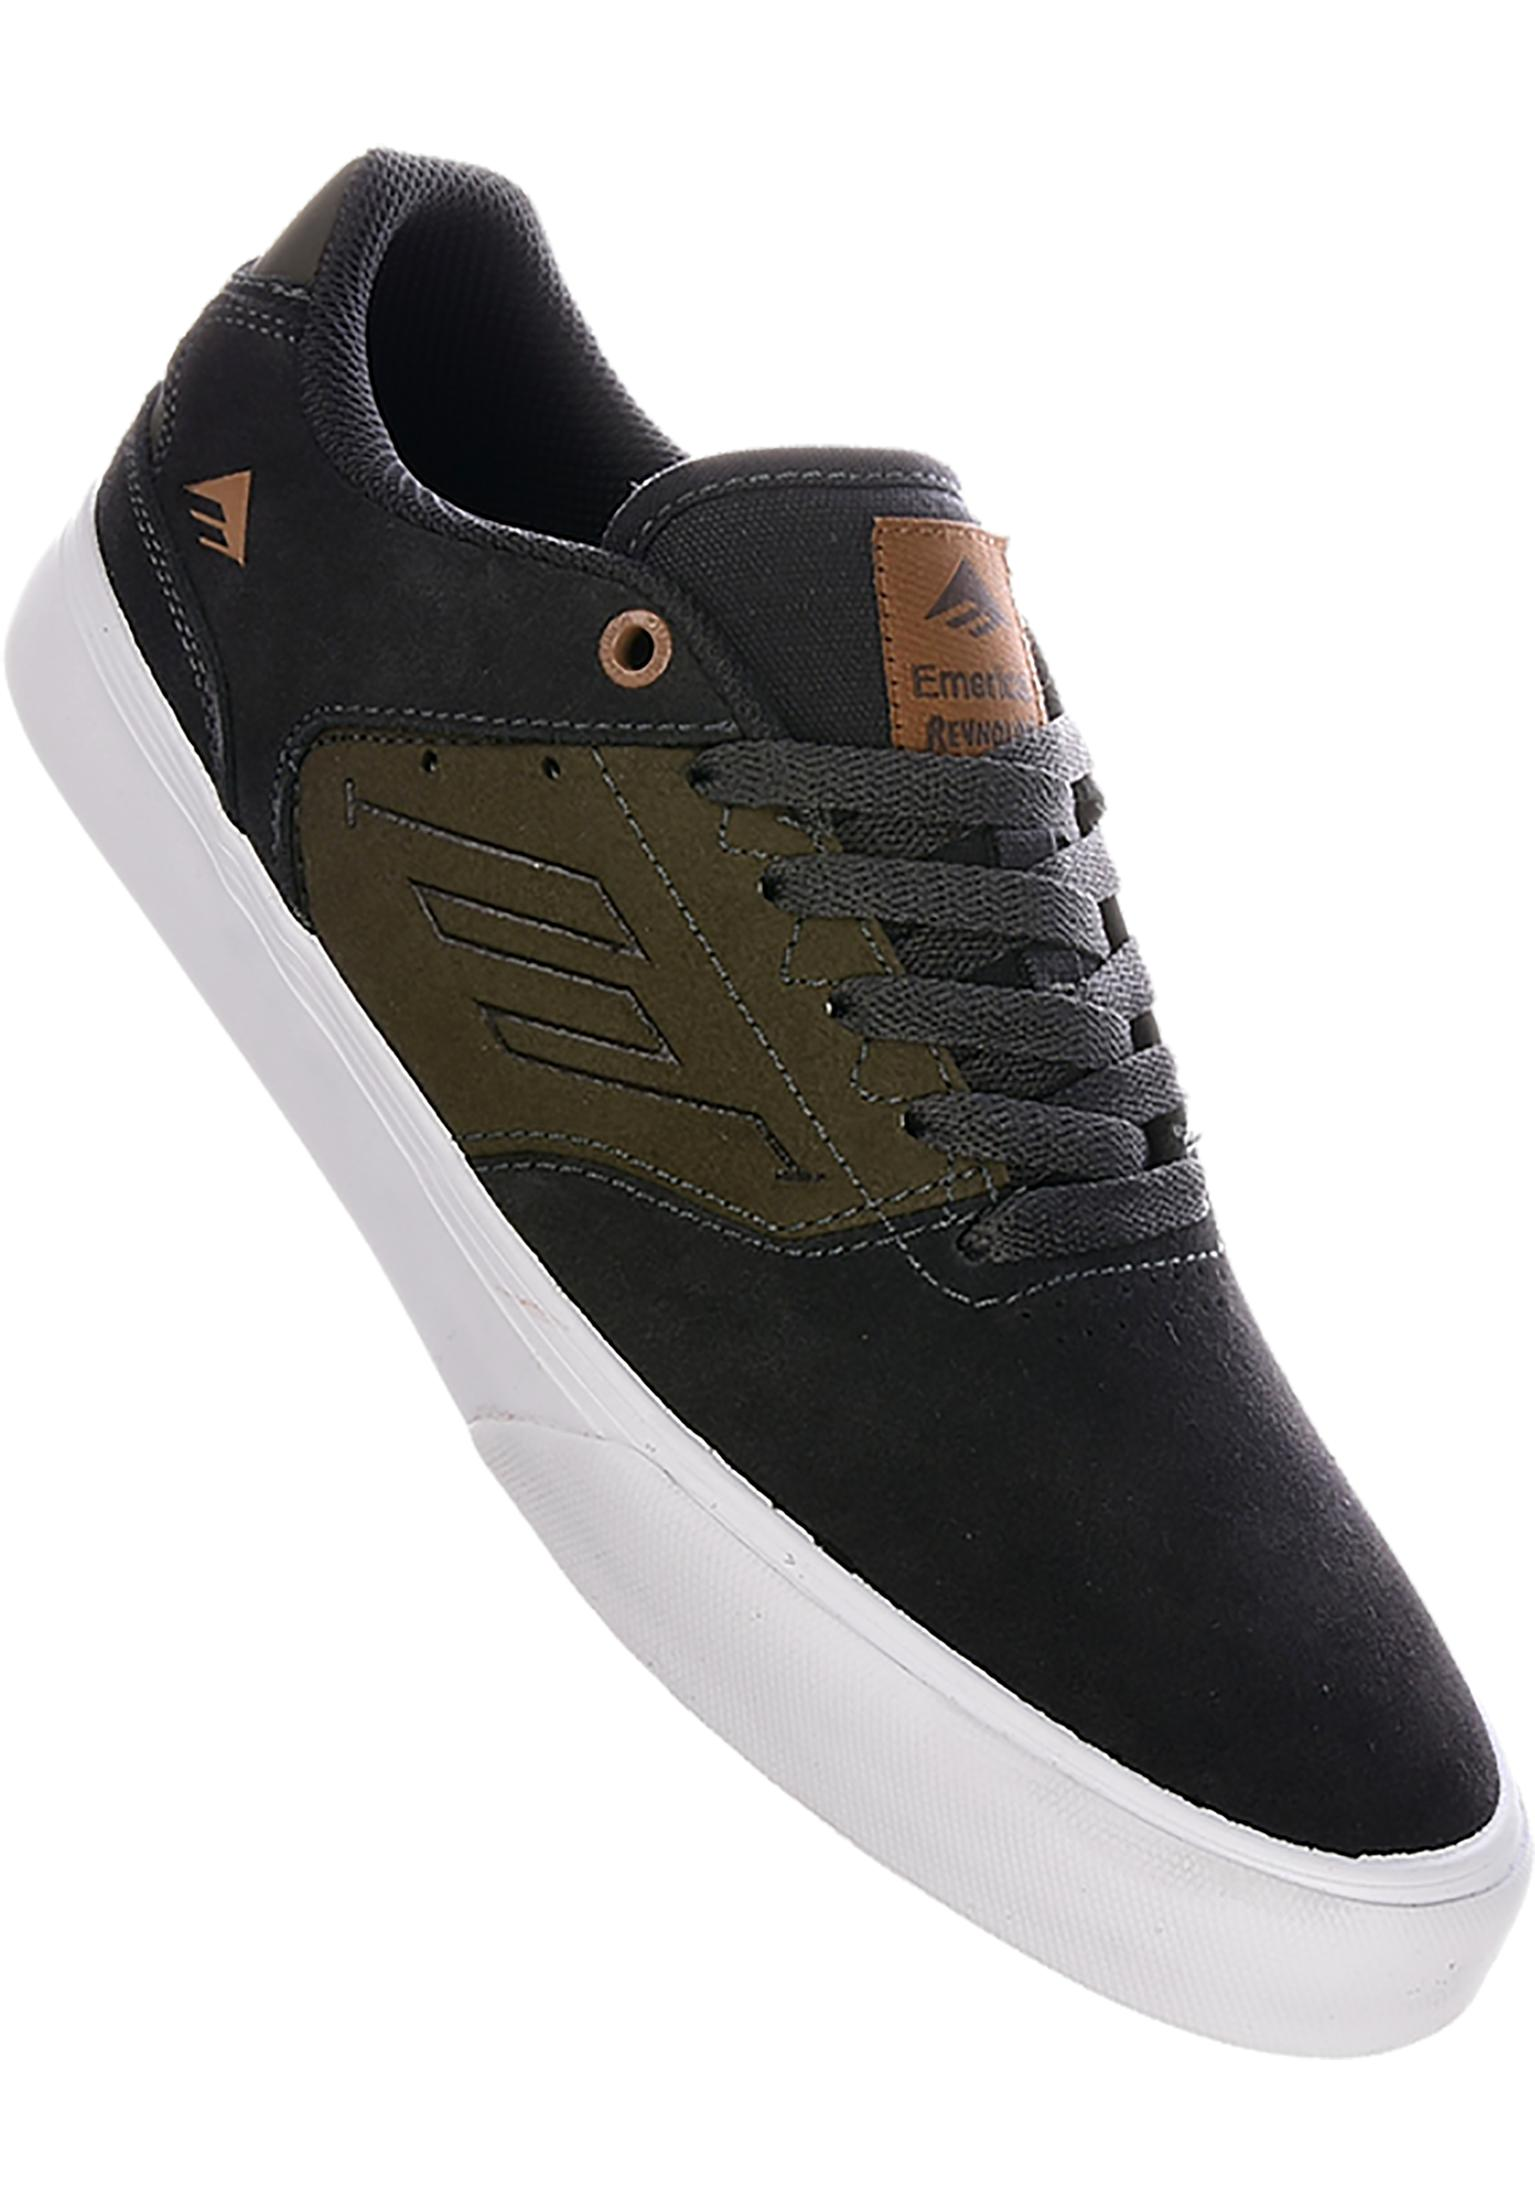 Reynolds Low Vulc Emerica All Shoes in